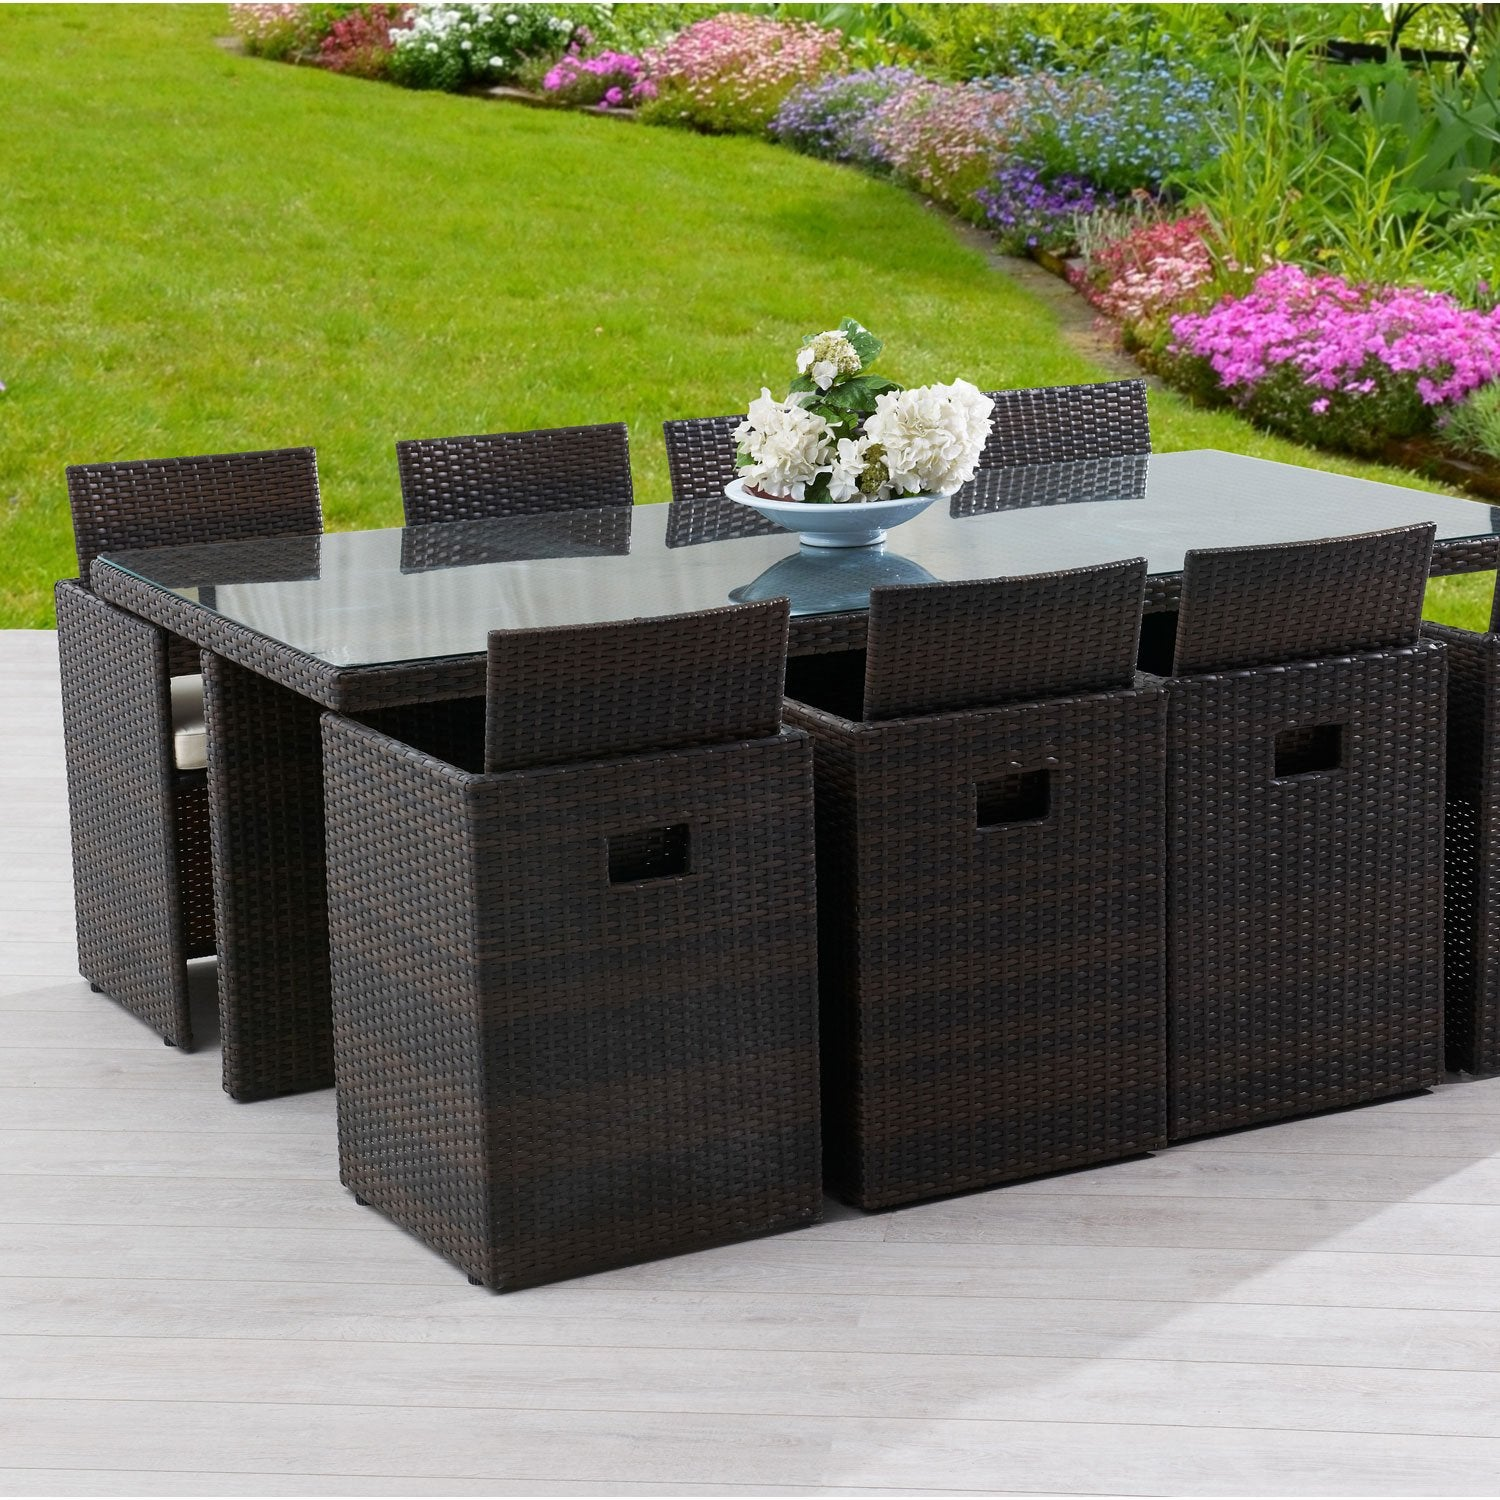 Salon de jardin encastrable r sine tress e marron 1 table - Table de jardin en resine tressee ...